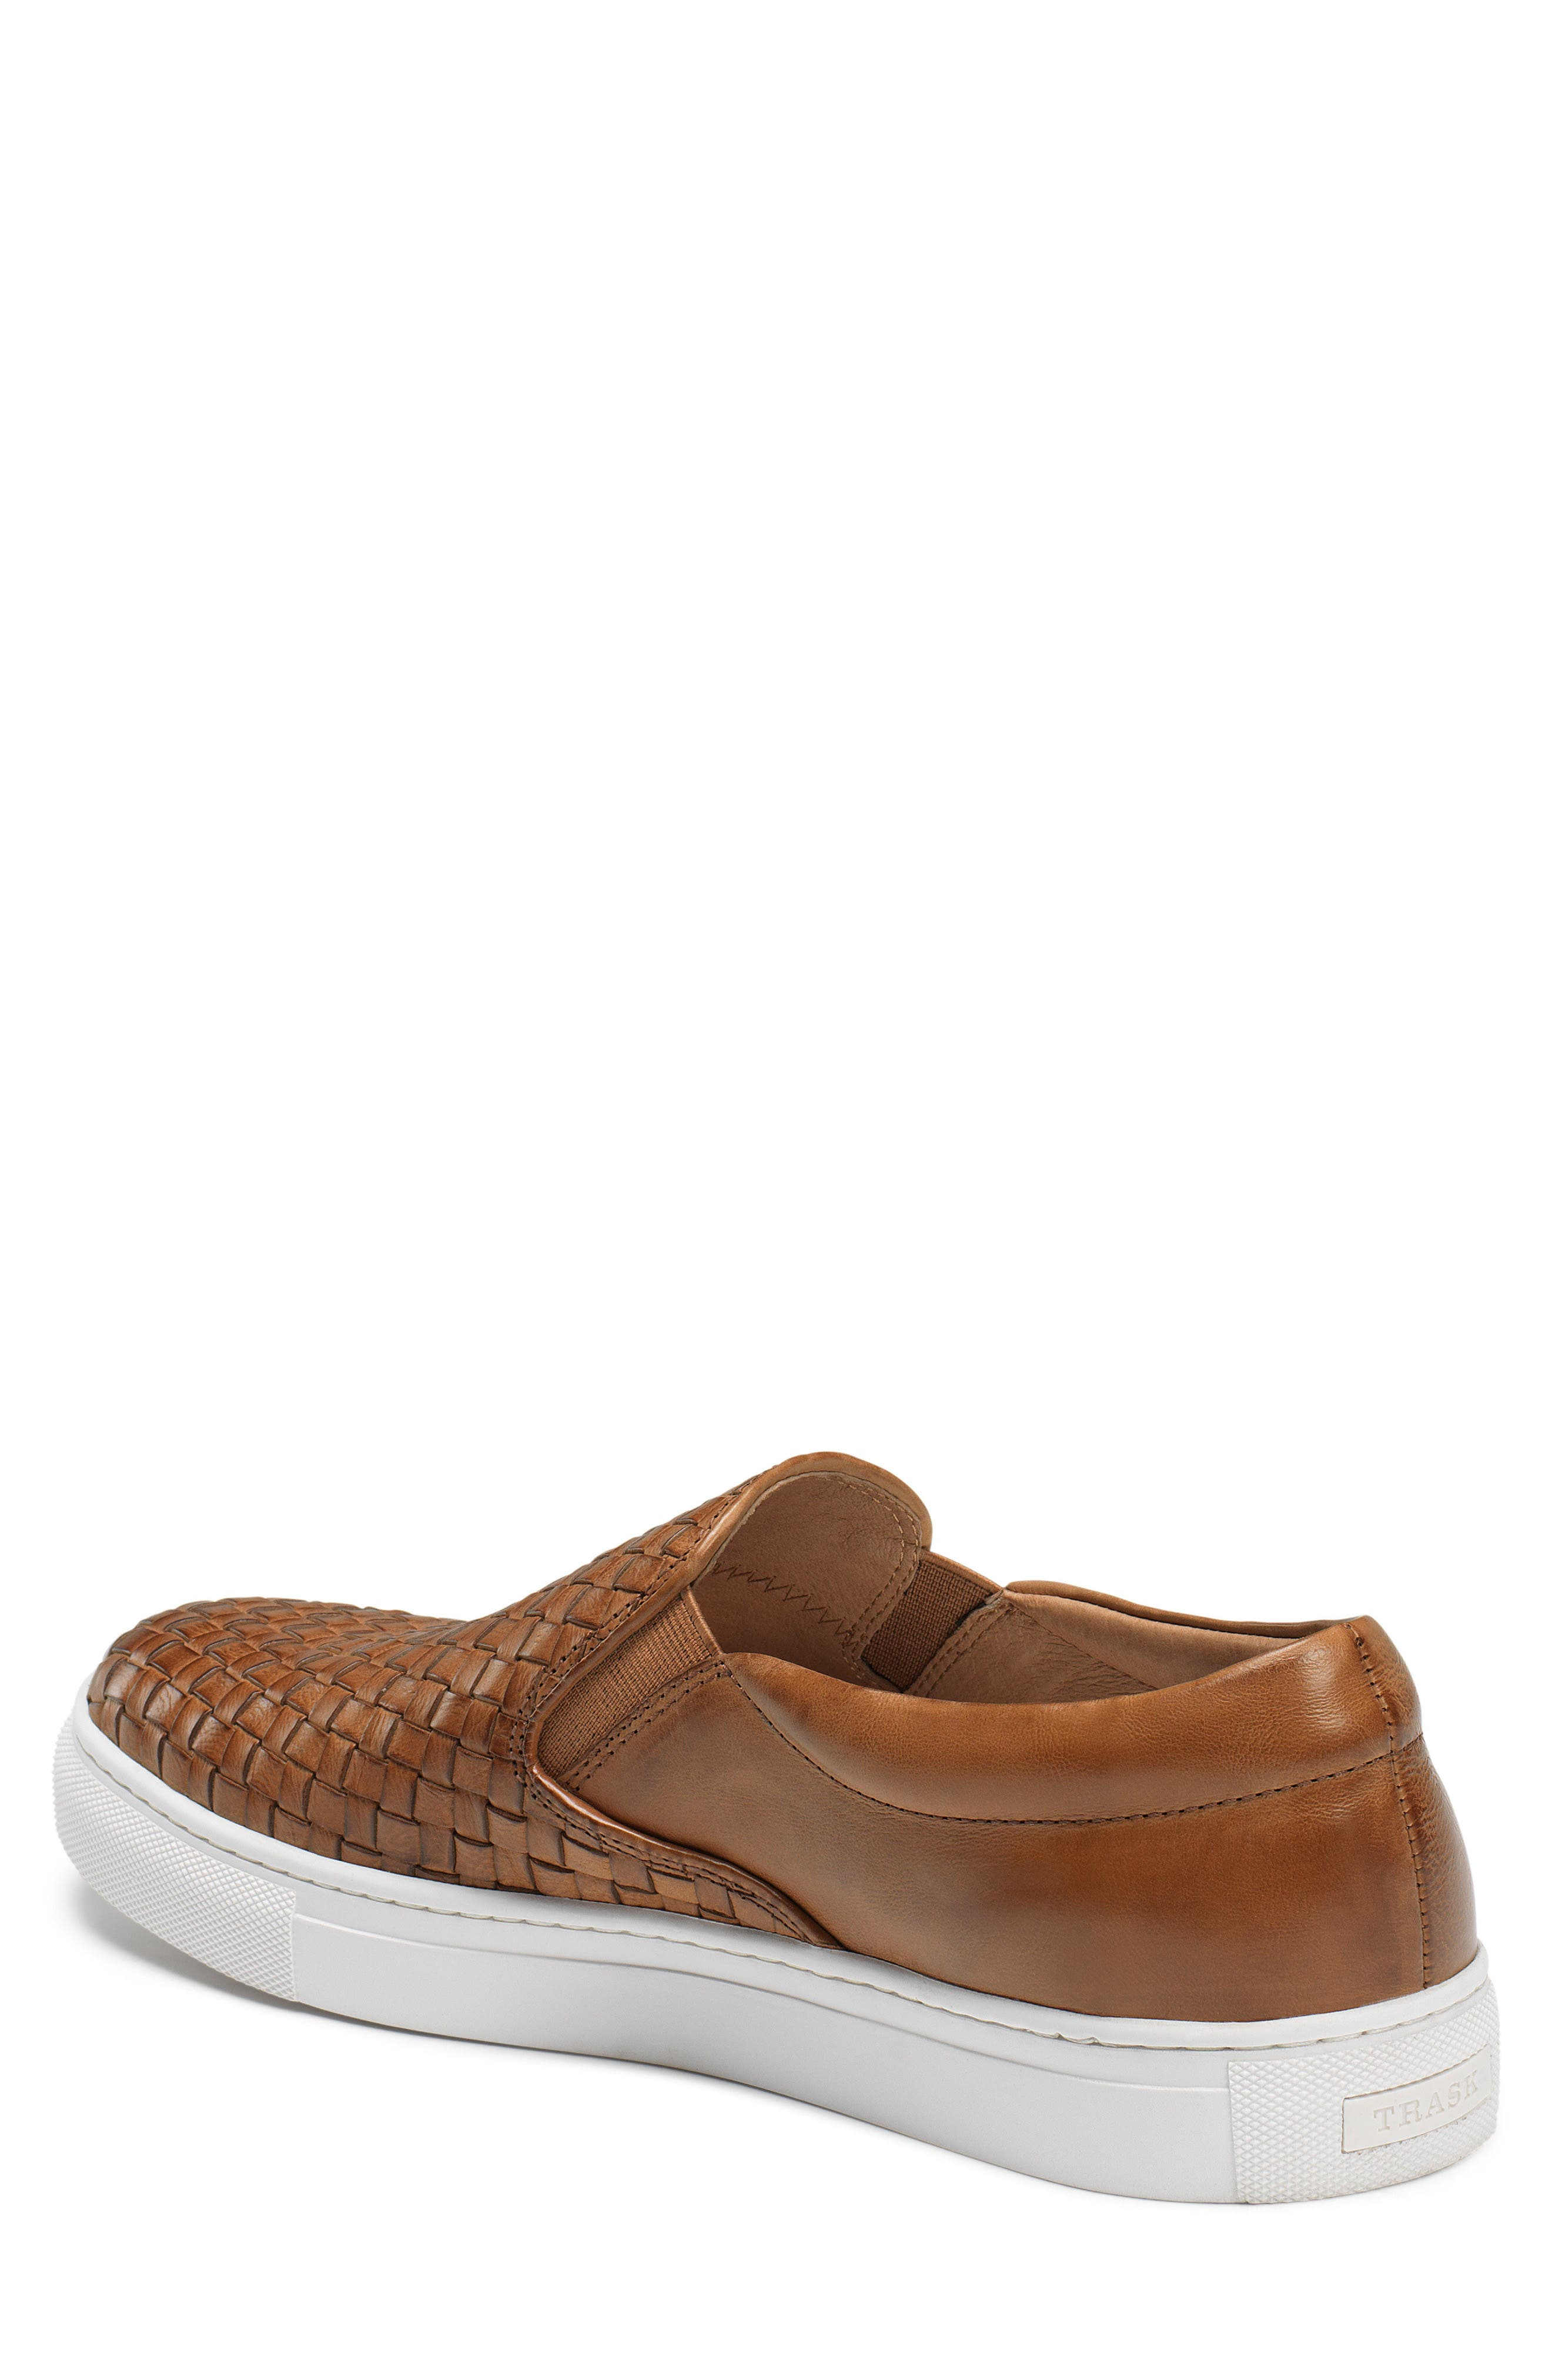 Alex Woven Slip-On Sneaker,                             Alternate thumbnail 2, color,                             Tan Leather